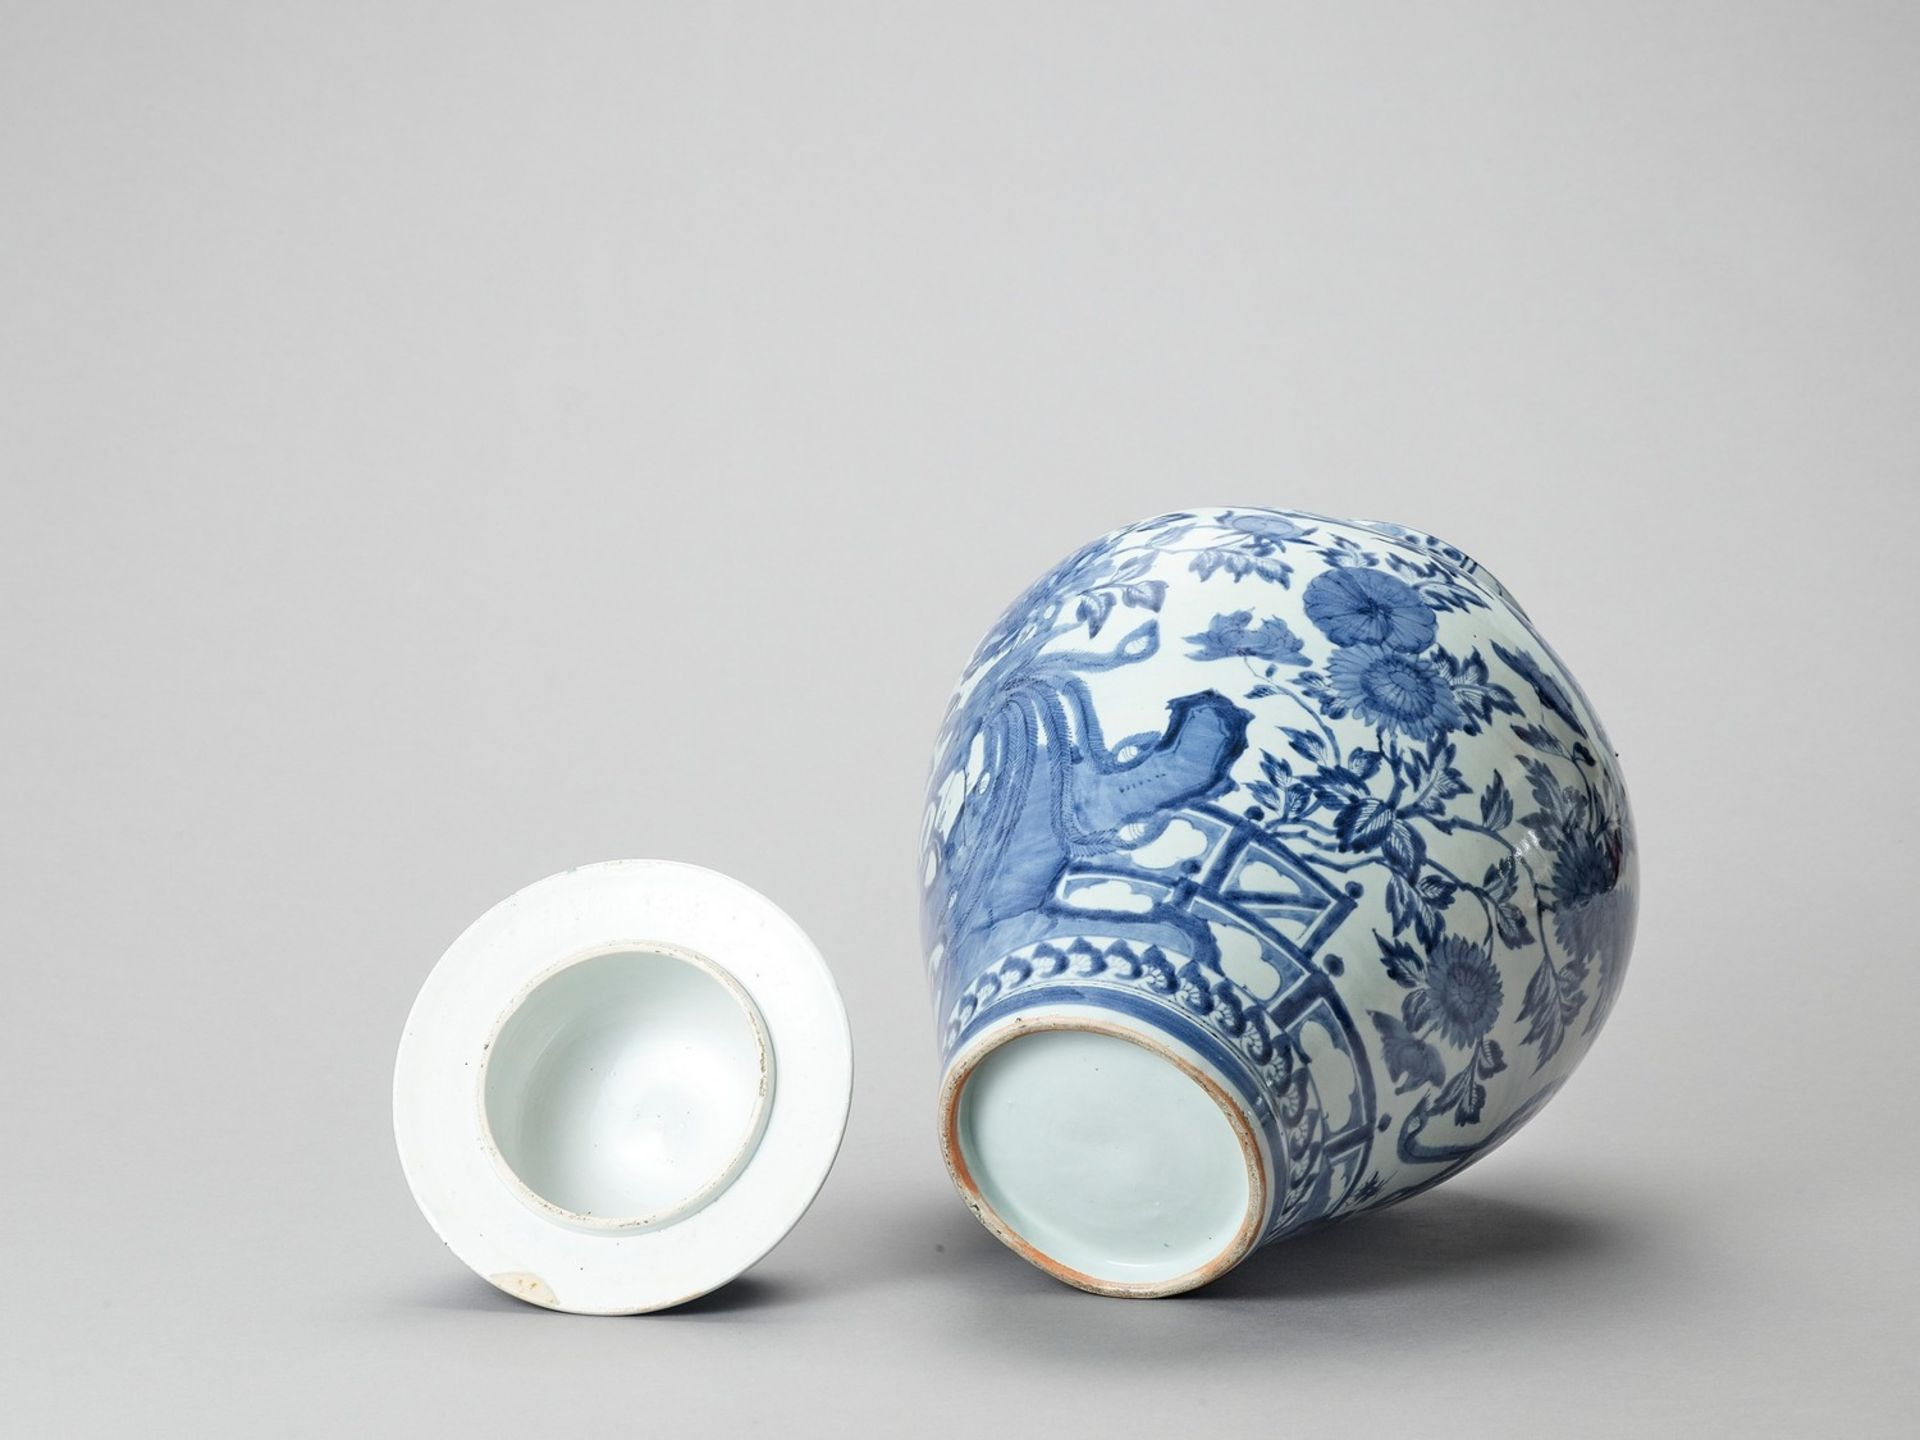 A LARGE BLUE AND WHITE PORCELAIN JAR AND COVER - Image 6 of 6